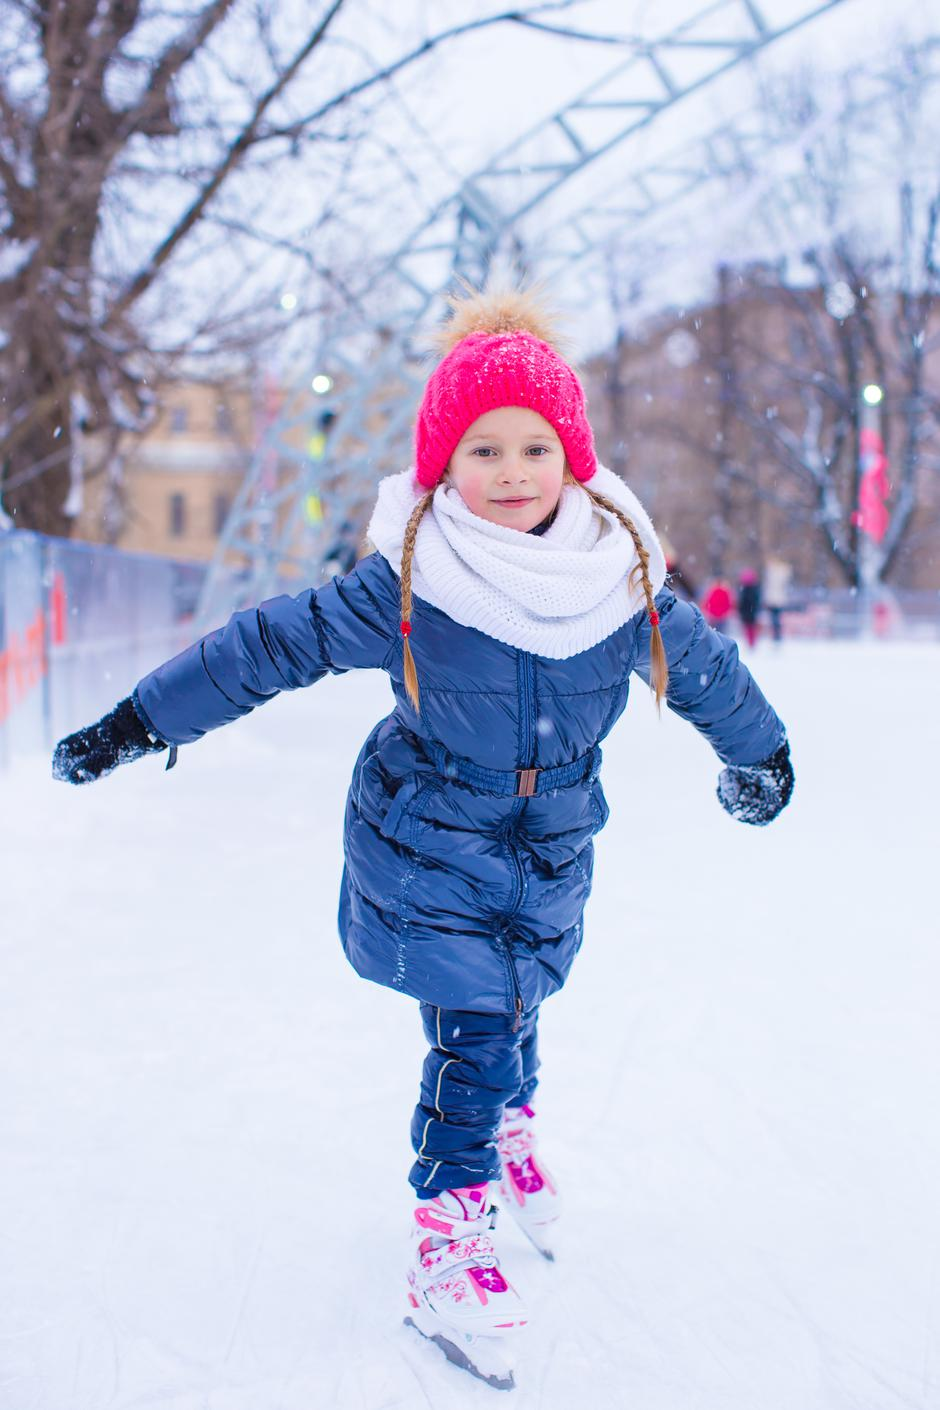 Adorable little girl skating on the ice-rink | Autor: travnikovstudio